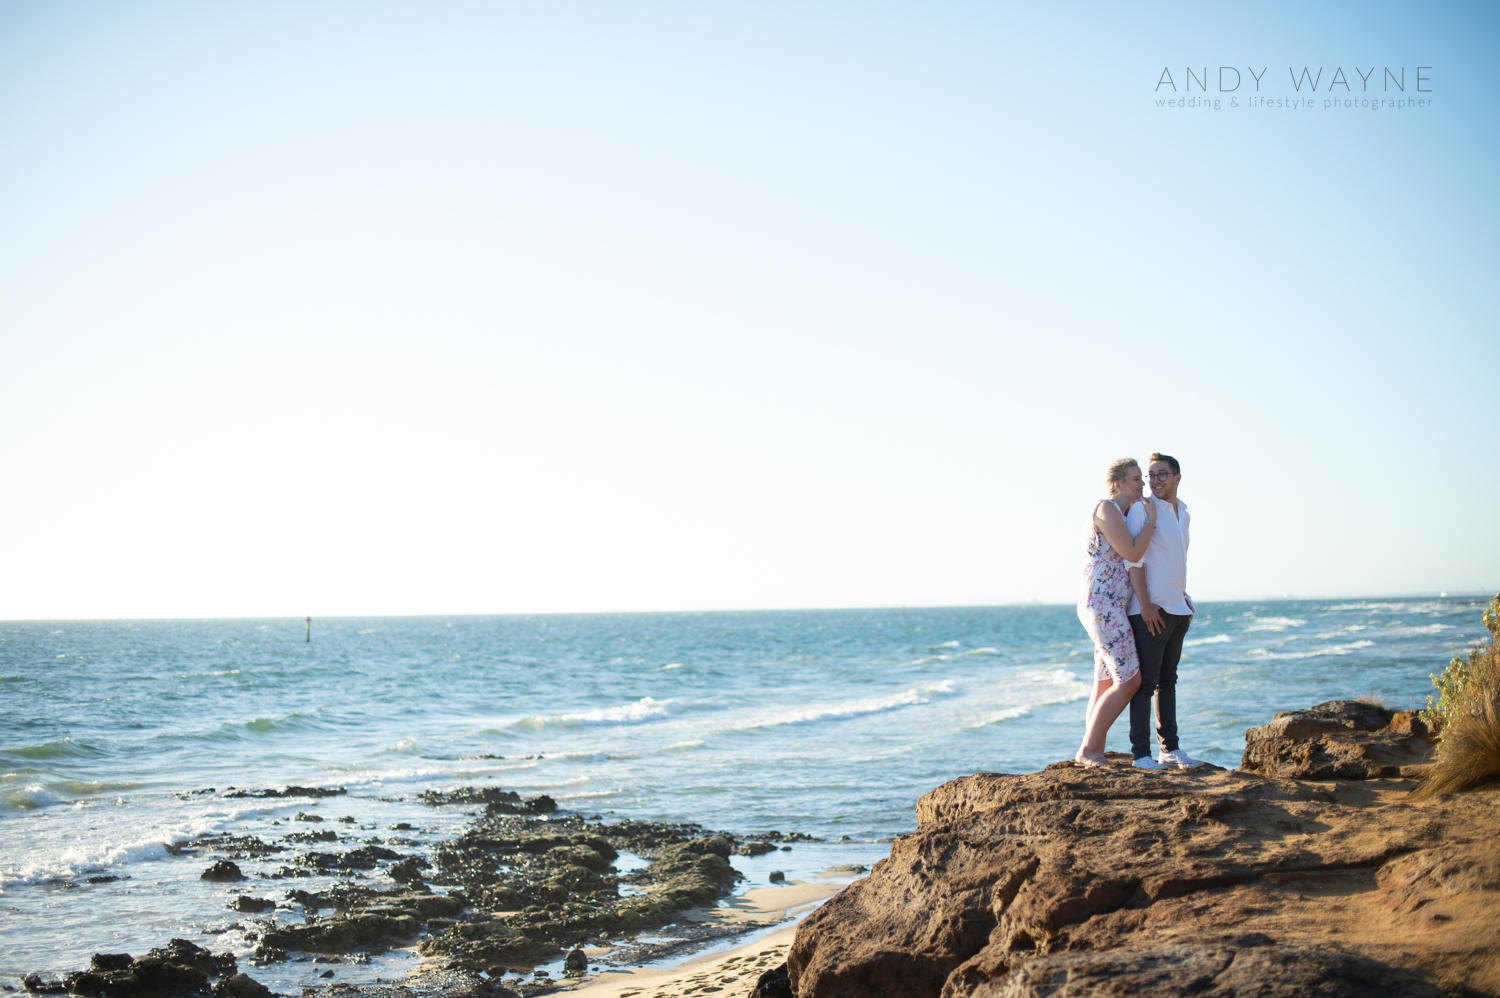 melbourne wedding photographer andy wayne-119.jpg